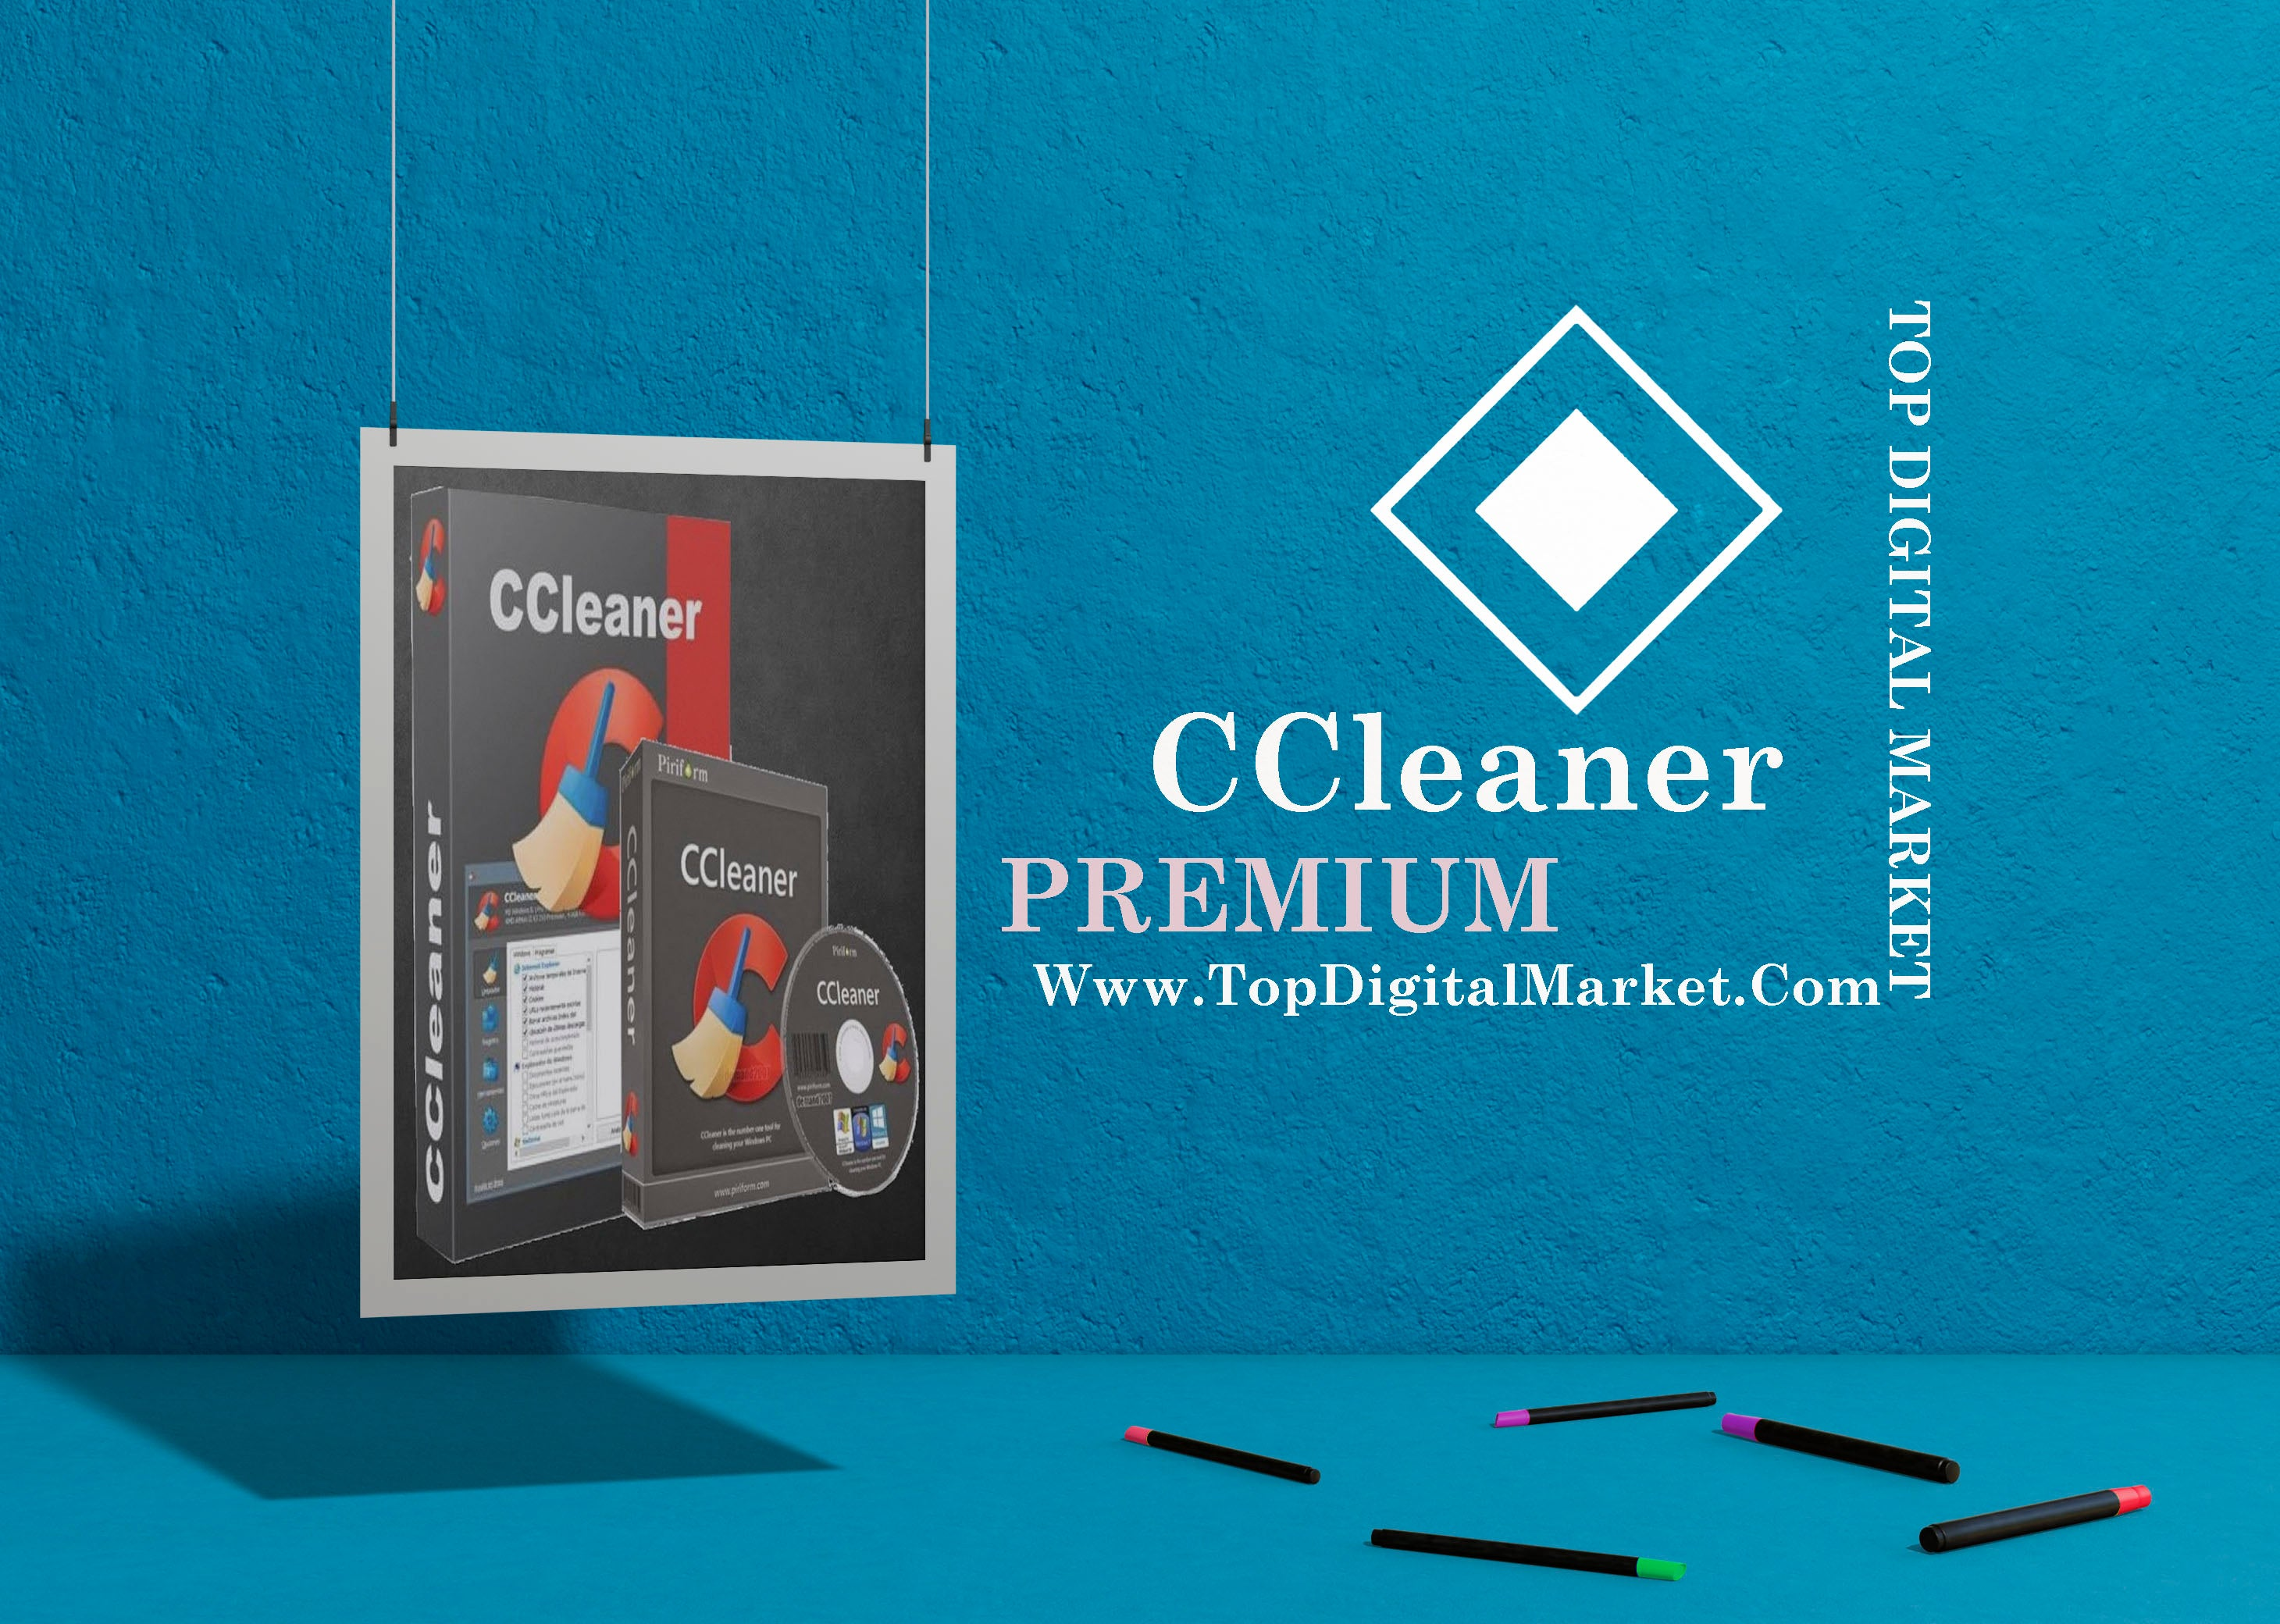 Ccleaner Professional 2019 last version for Windows lifetime license